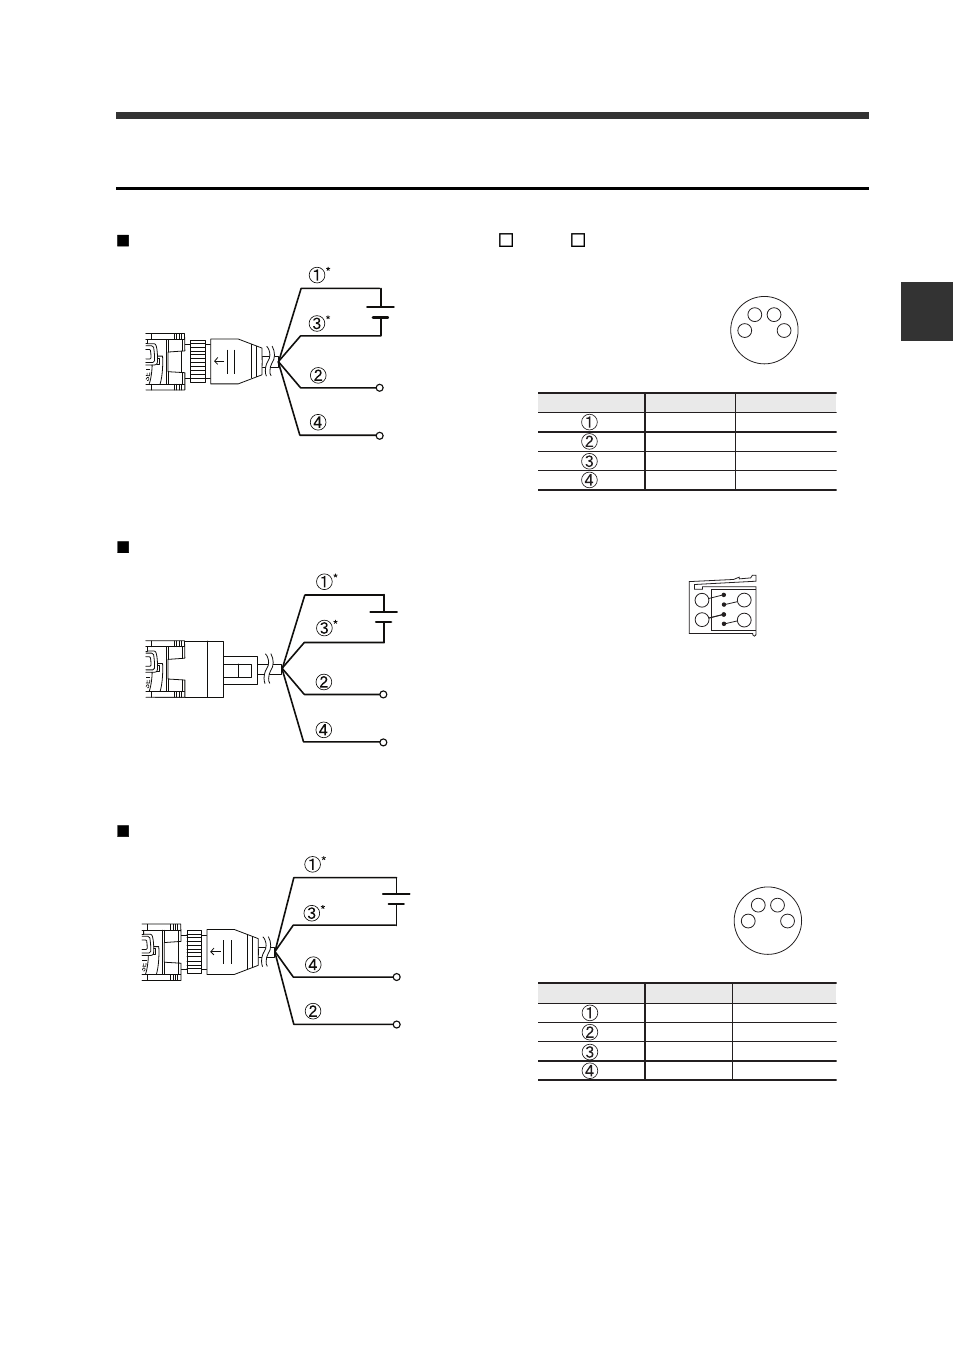 hight resolution of wiring diagrams for m8 e con connector types keyence fs n10 series nissan speed sensor wire